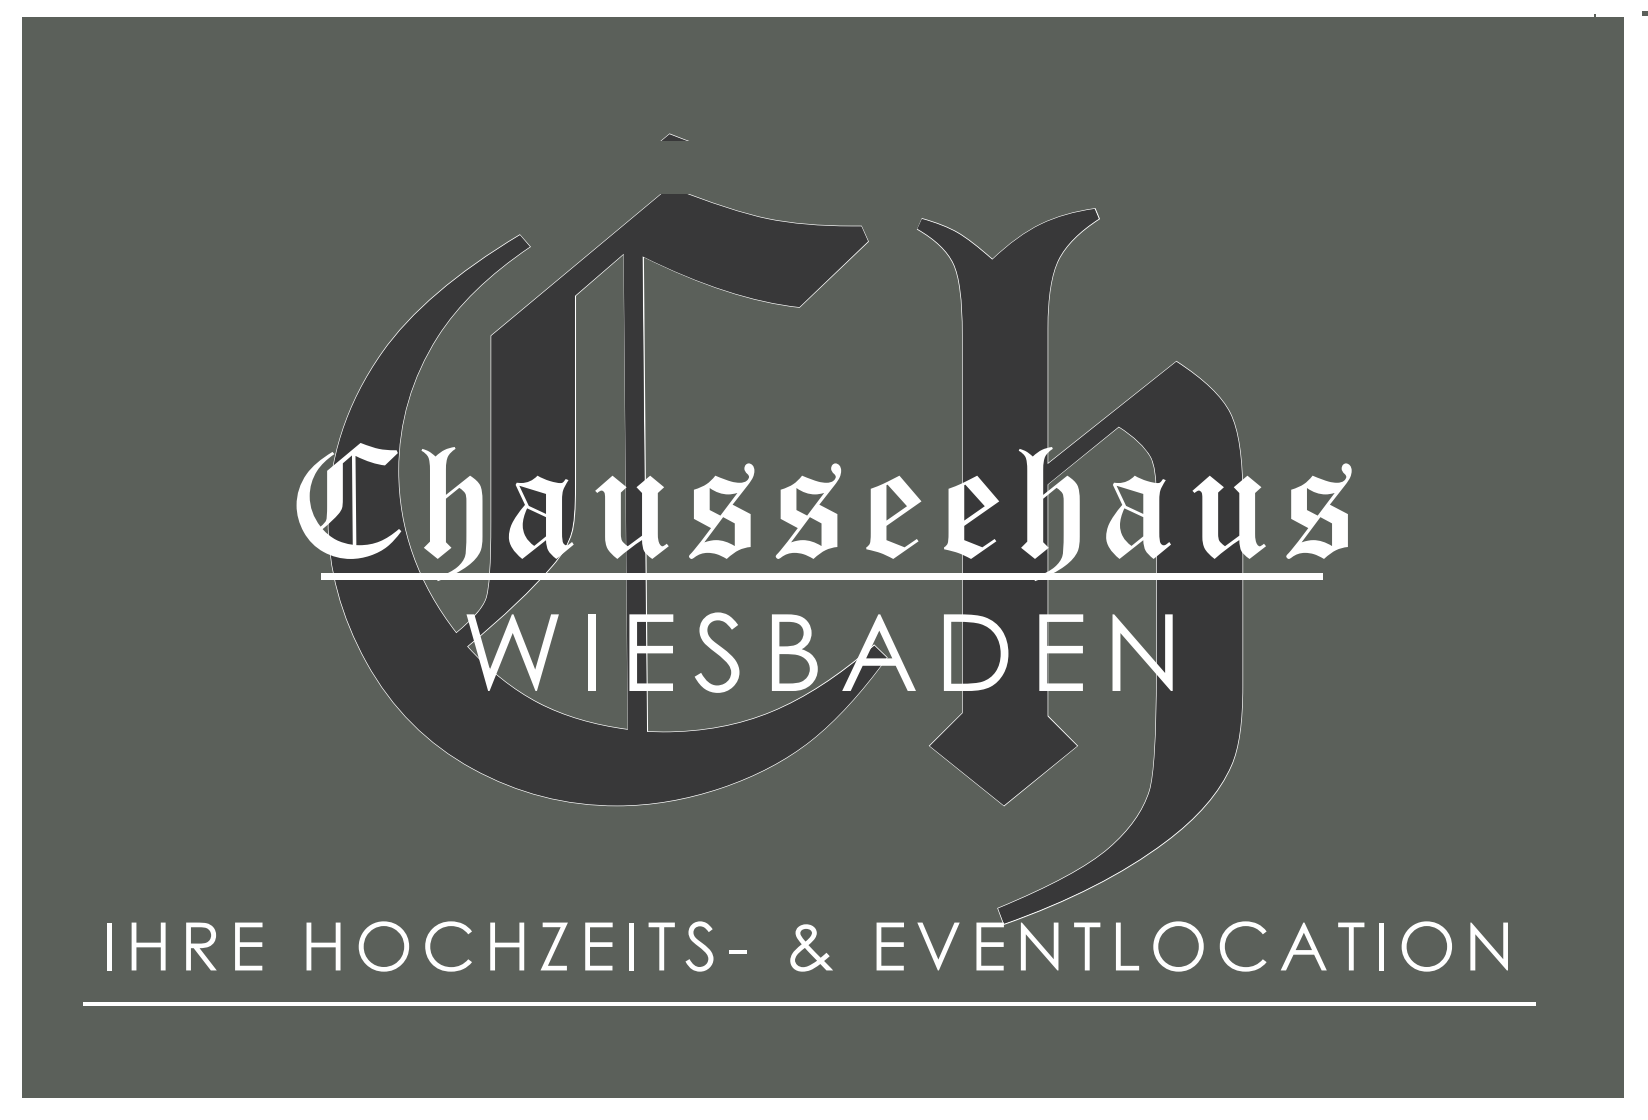 Chausseehaus Wiesbaden attached image